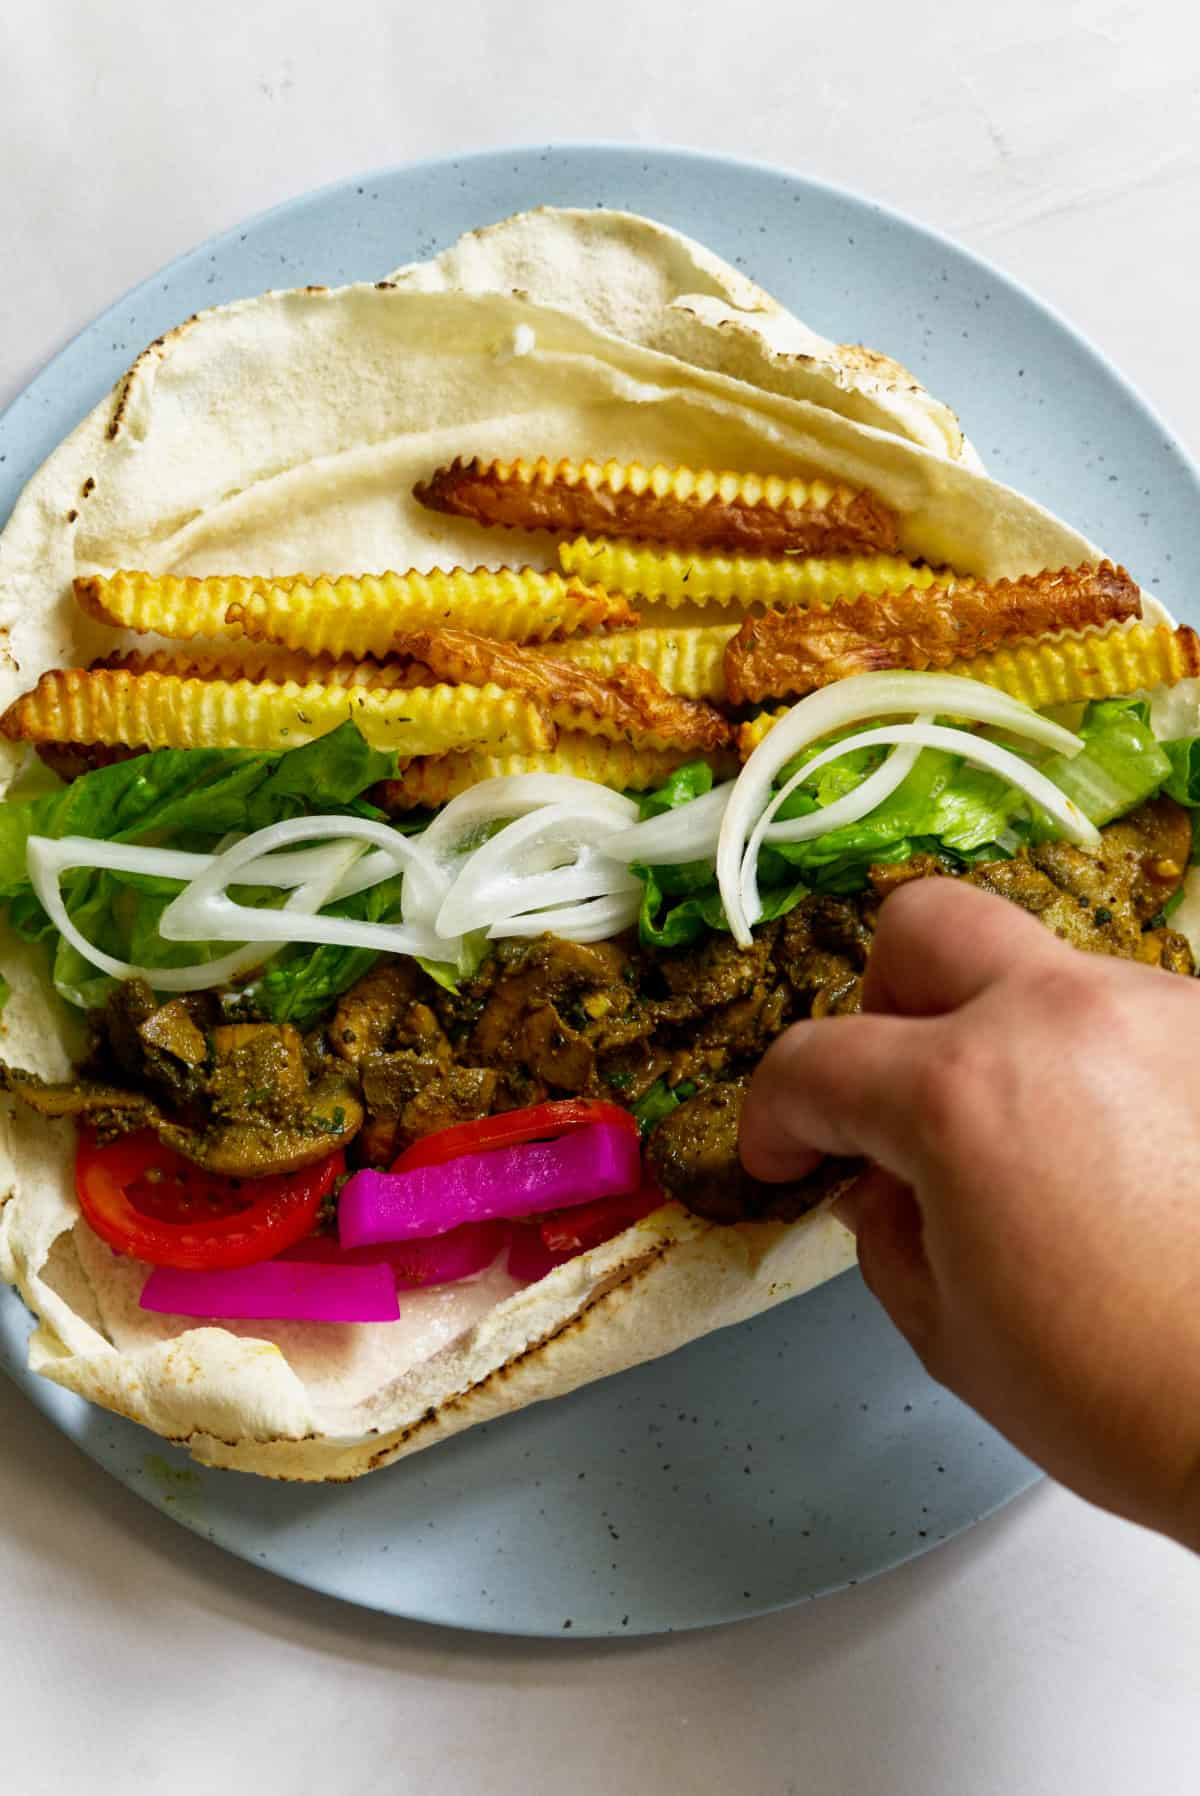 Vegan shawarma roll with a hand